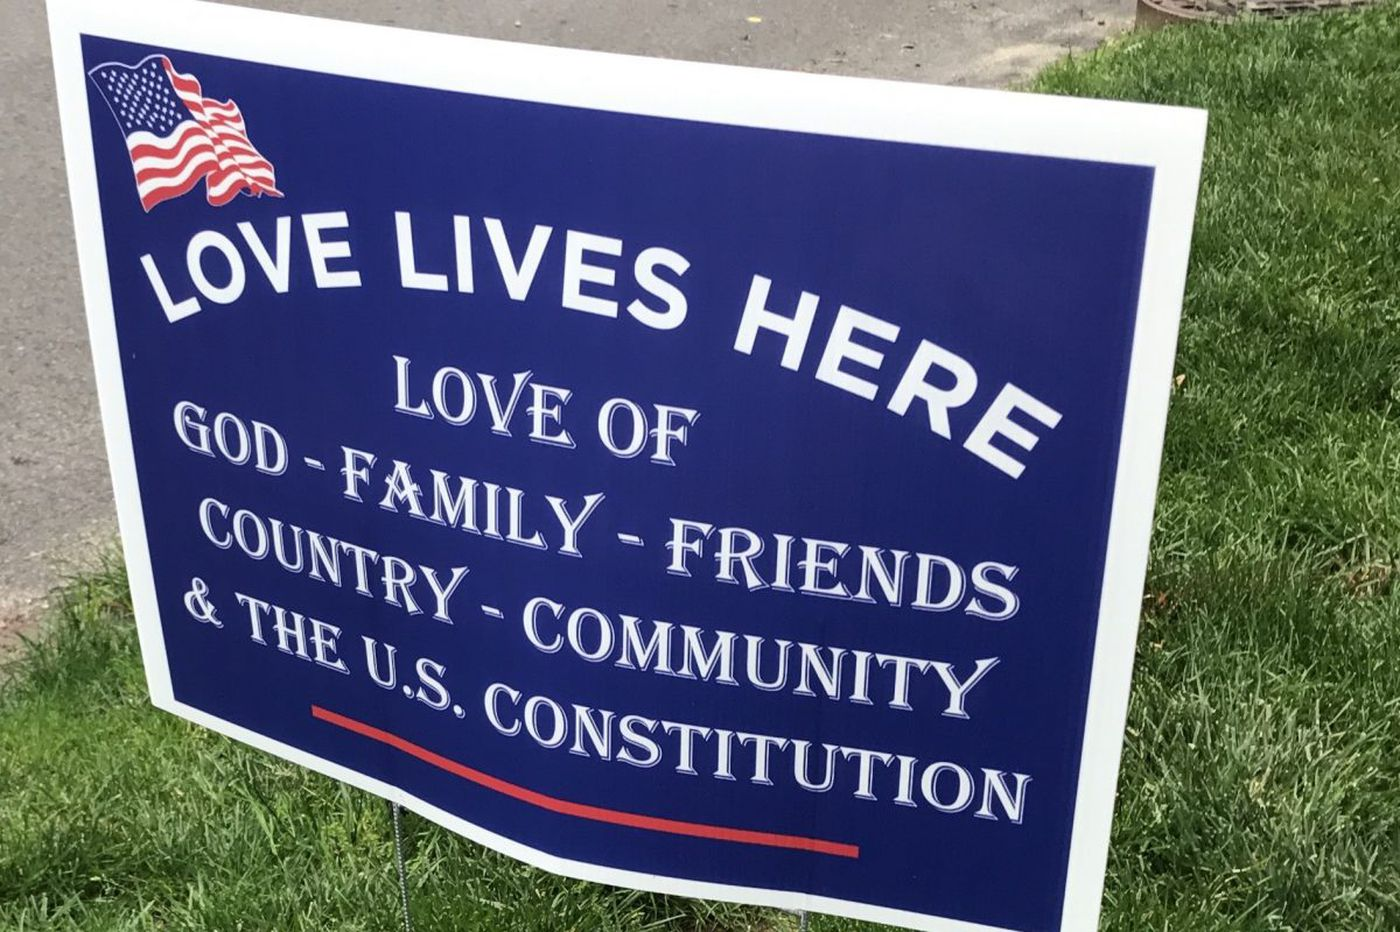 Trump supporters unveil new lawn sign